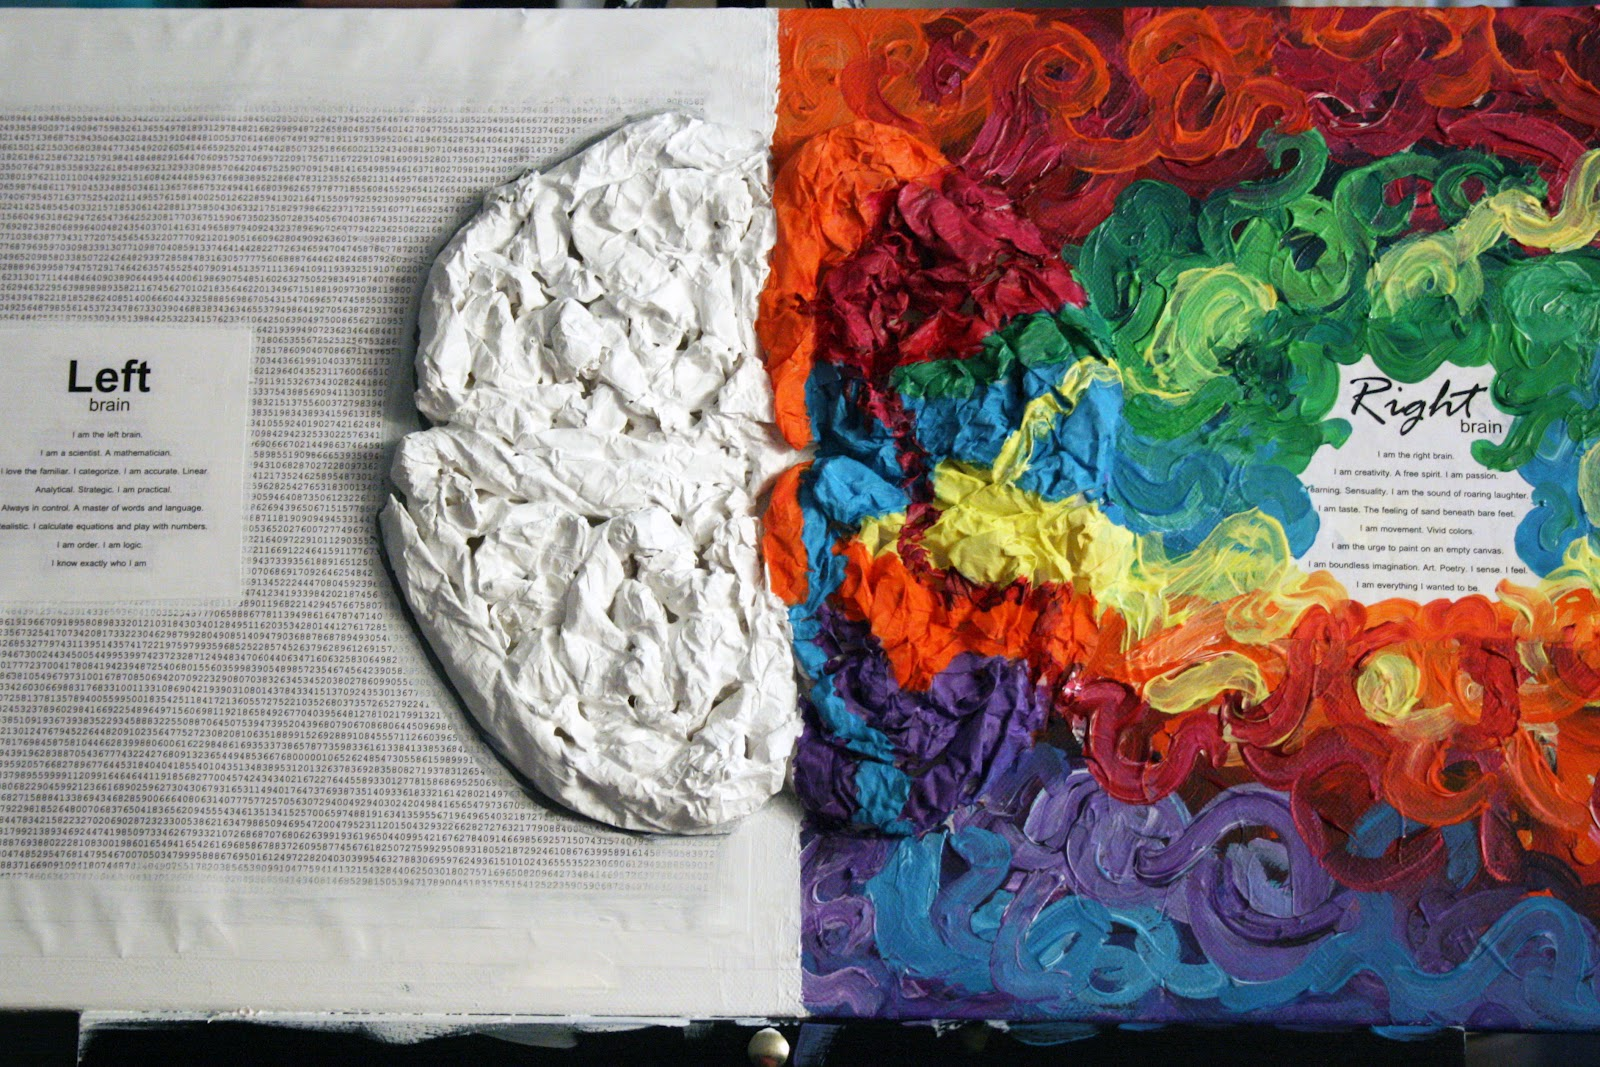 how the left and right brain So yea, you know how the left brain is really realistic, analytical, practical, organized, and logical, and the right brain is so darn creative, passionate, sensual, tasteful, colorful, vivid, and poetic.